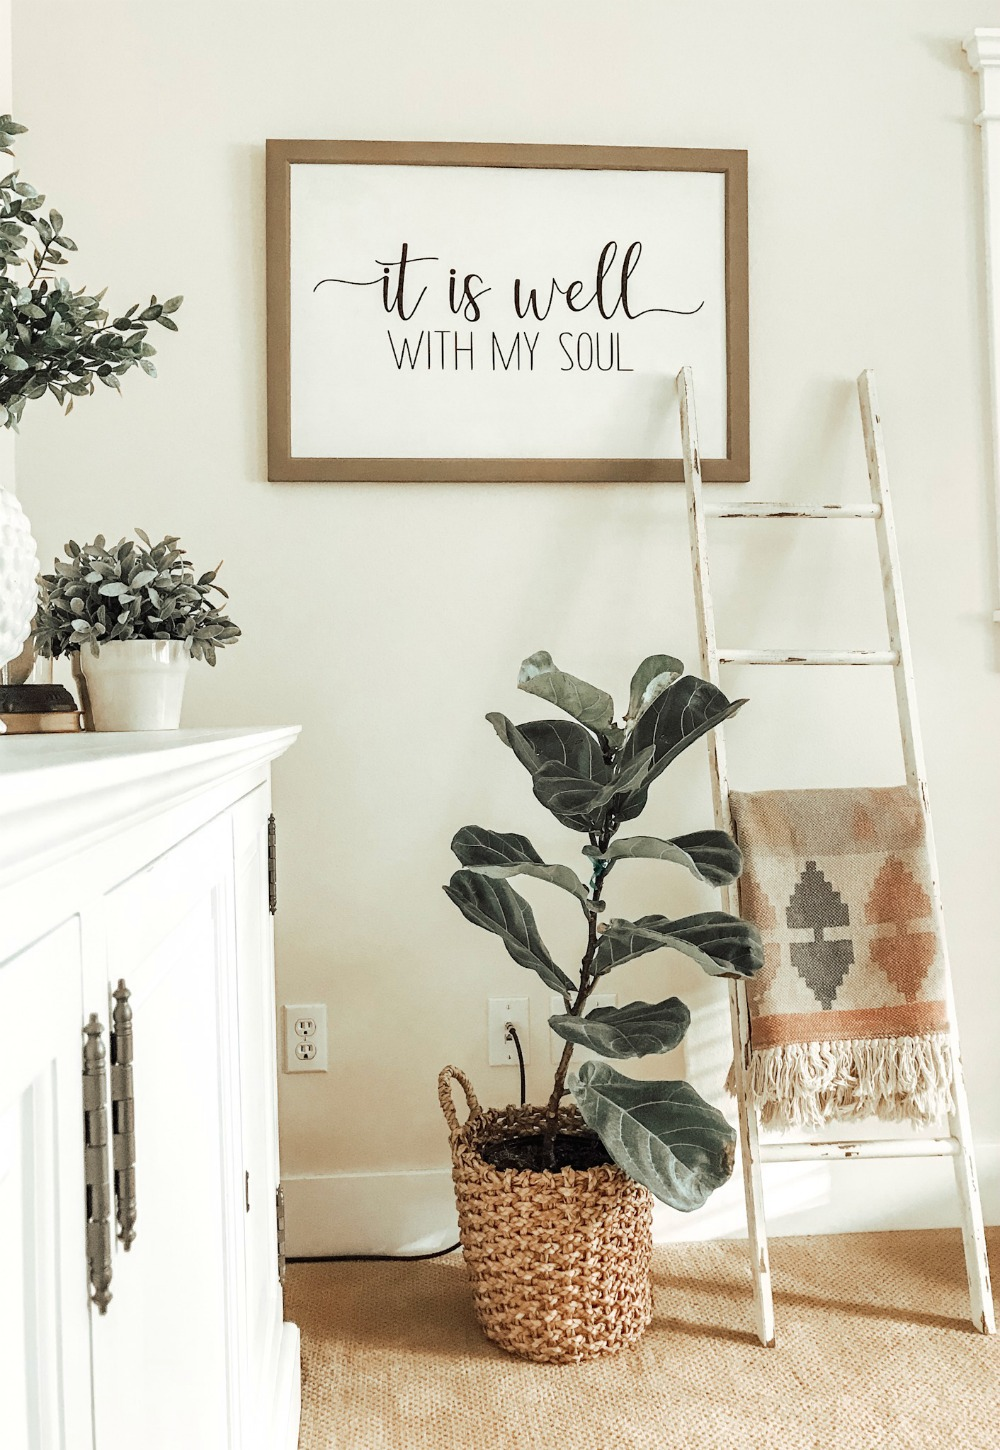 it is well with my soul vinyl silhouette sign